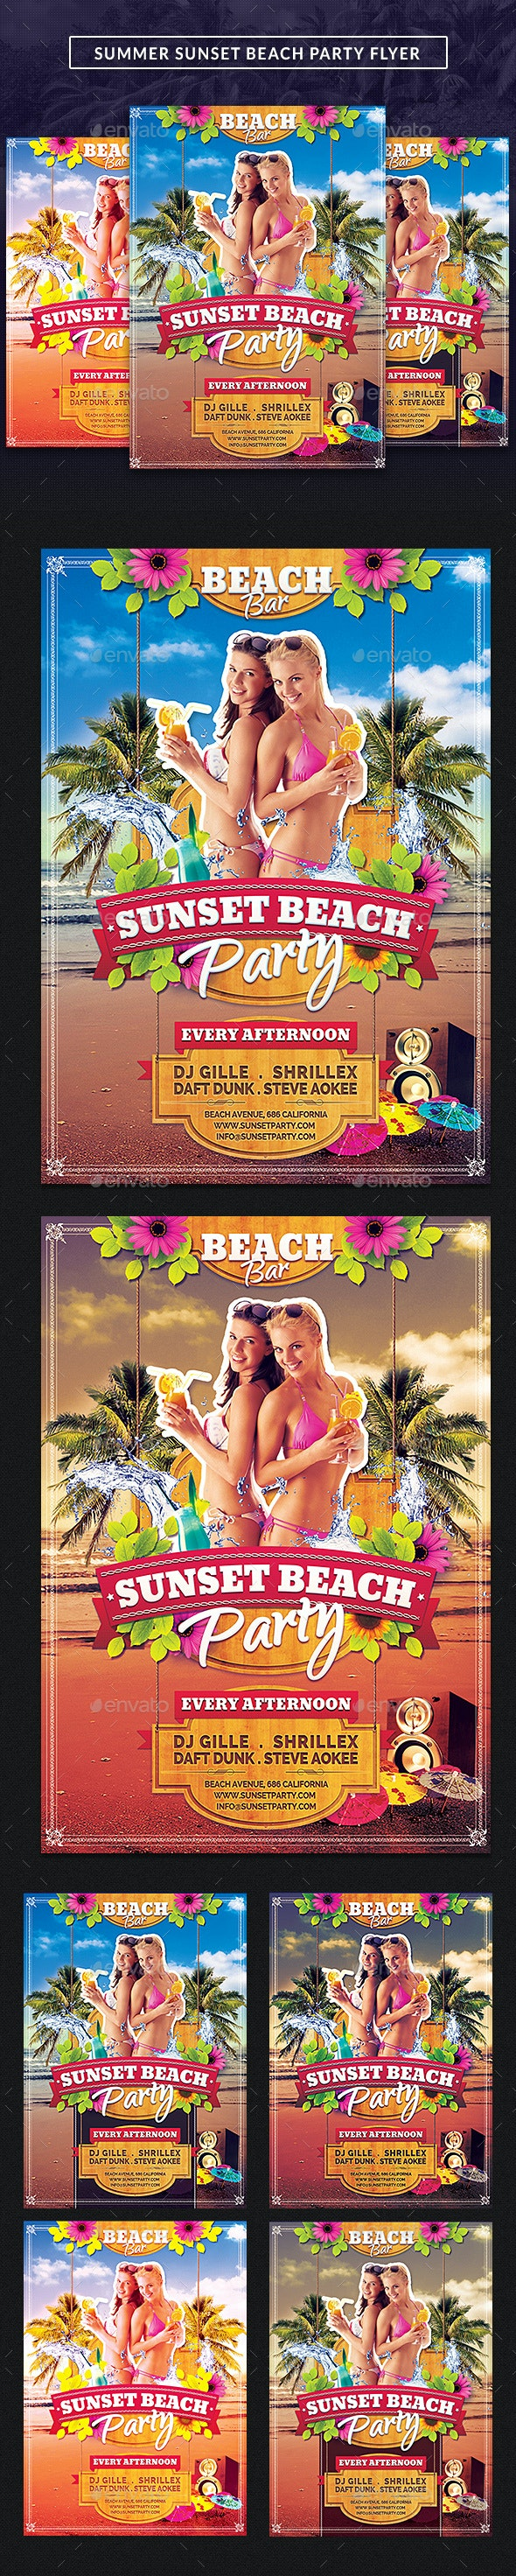 Summer Sunset Beach Party Flyer - Clubs & Parties Events